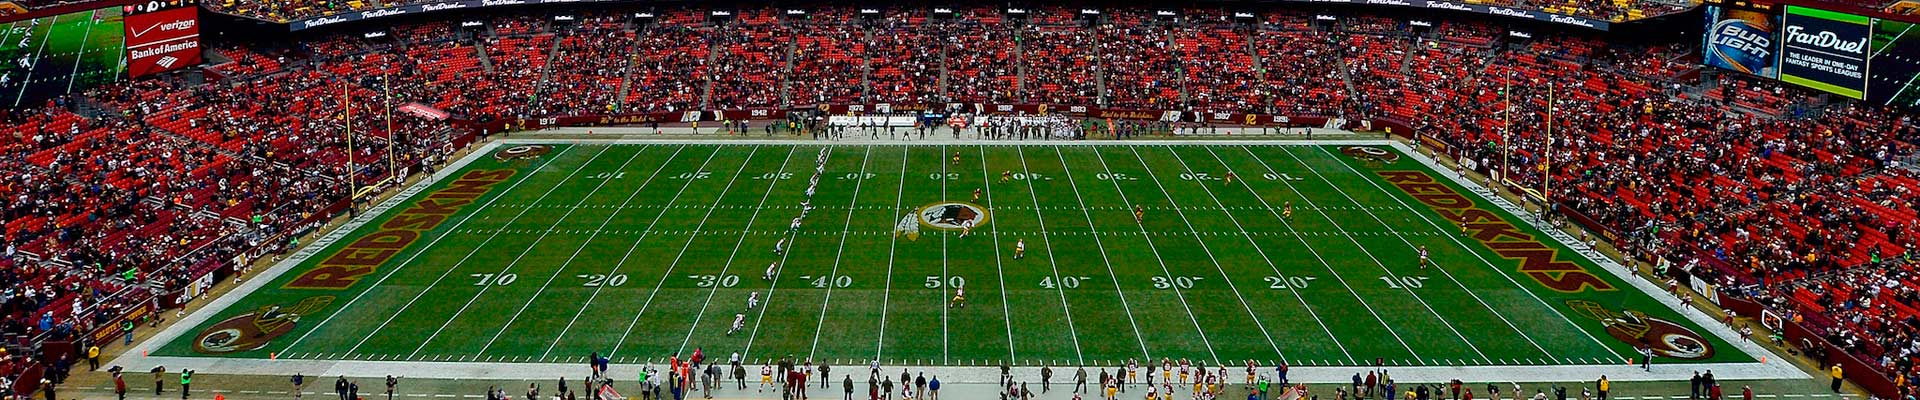 Washington Redskins Travel and Vacation Packages